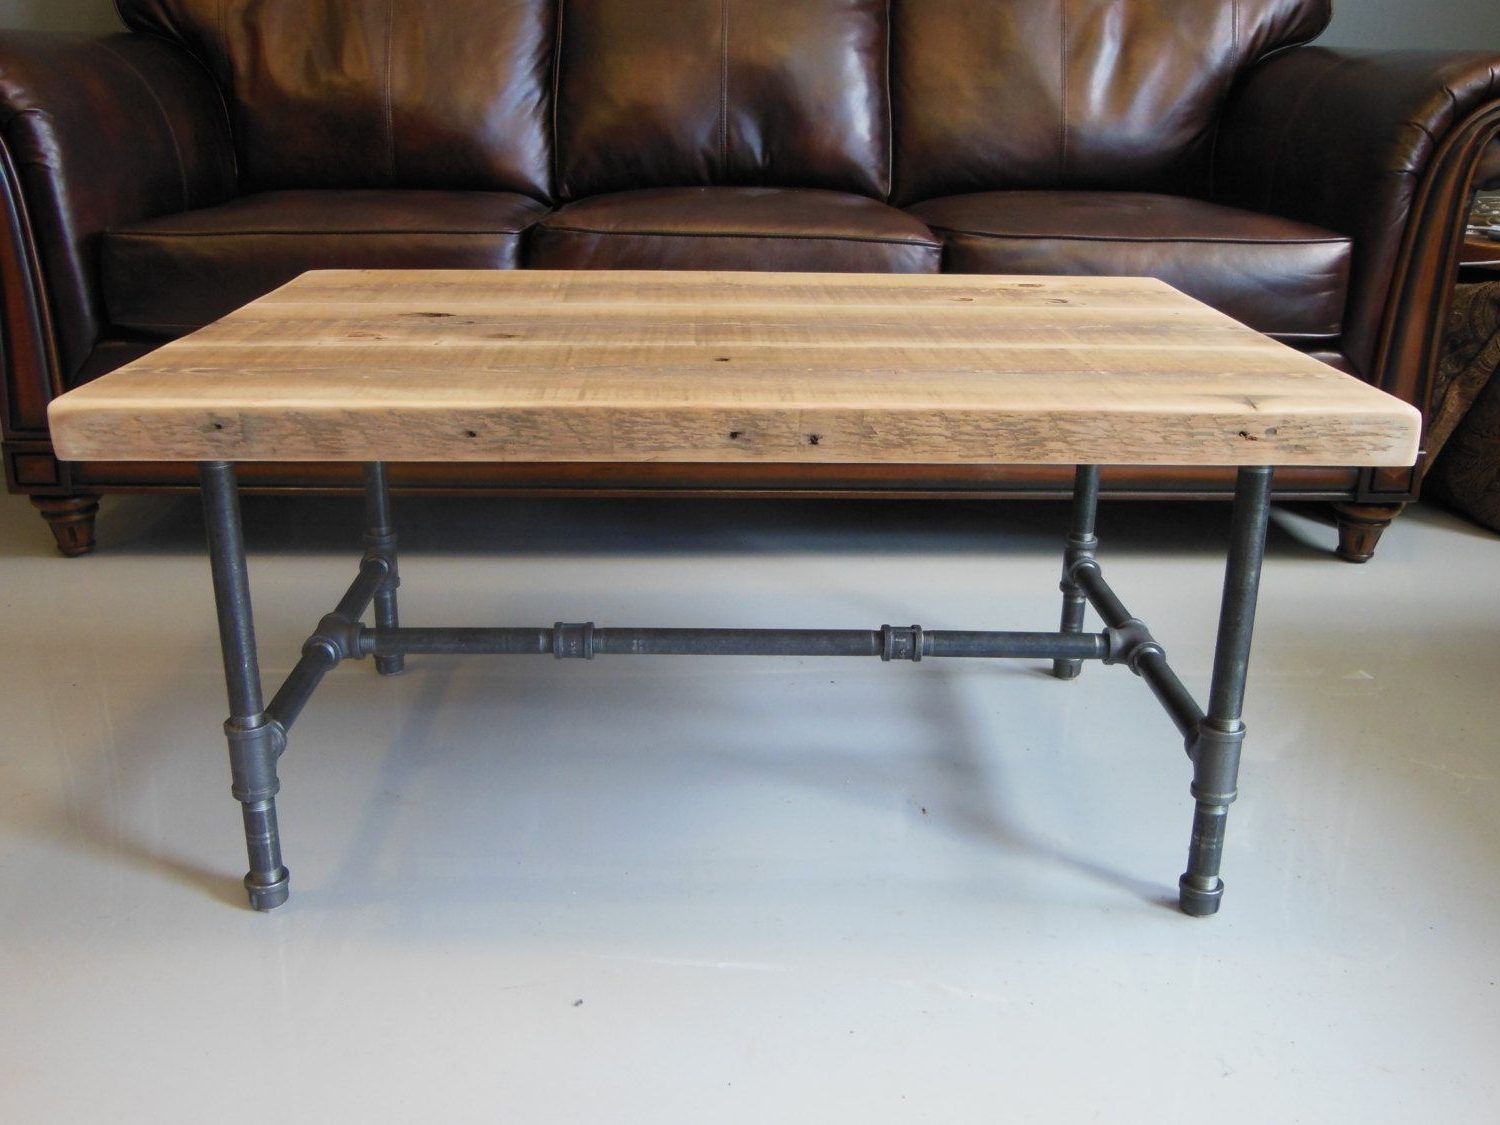 Widely Used Reclaimed Elm Cast Iron Coffee Tables Inside Furniture & Accessories, Industrial Reclaimed Wood Coffee Table In (View 19 of 20)